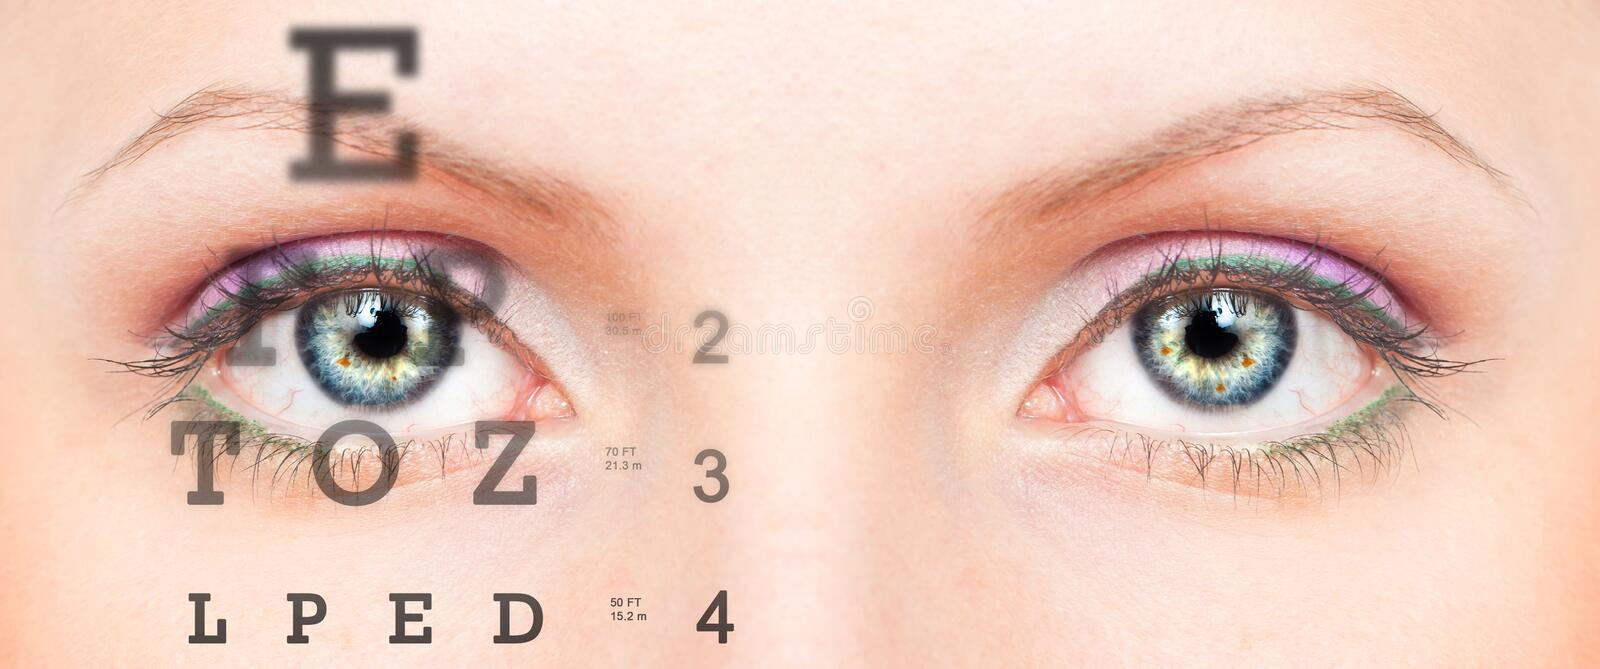 Download Eye With Test Vision Chart Royalty Free Stock Images - Image: 28033109